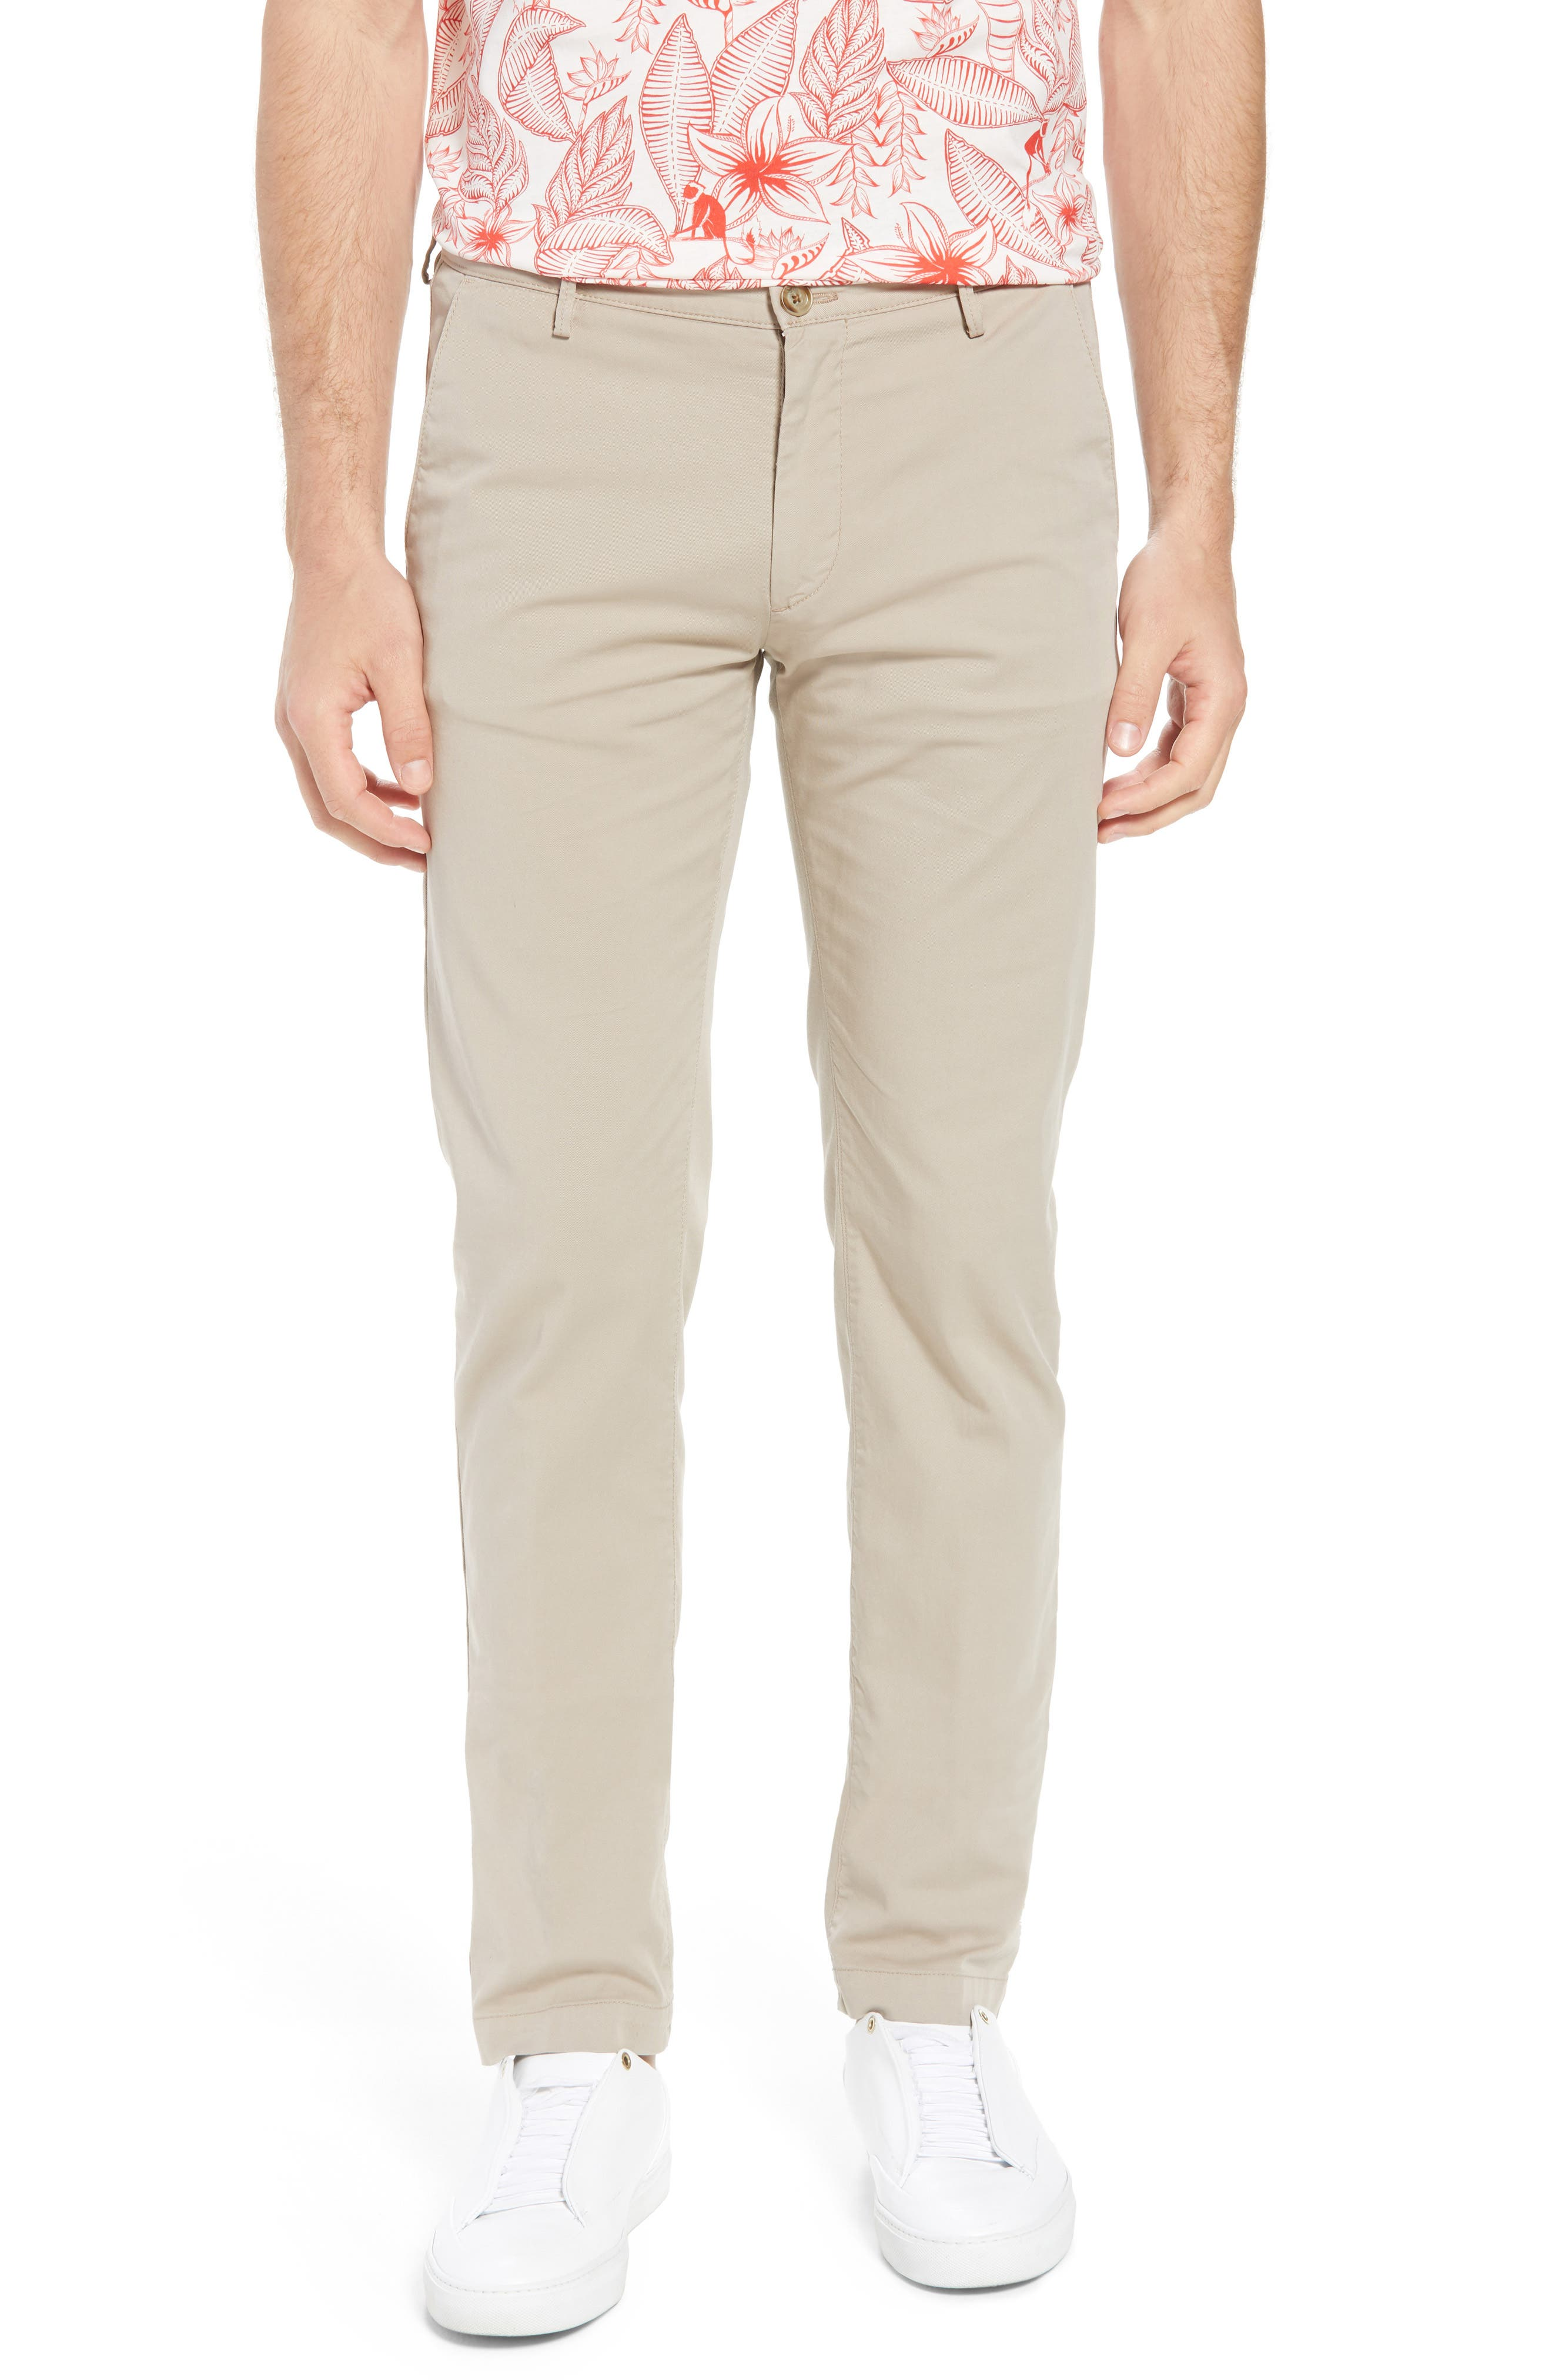 Rice Slim Fit Chino Pants,                         Main,                         color,